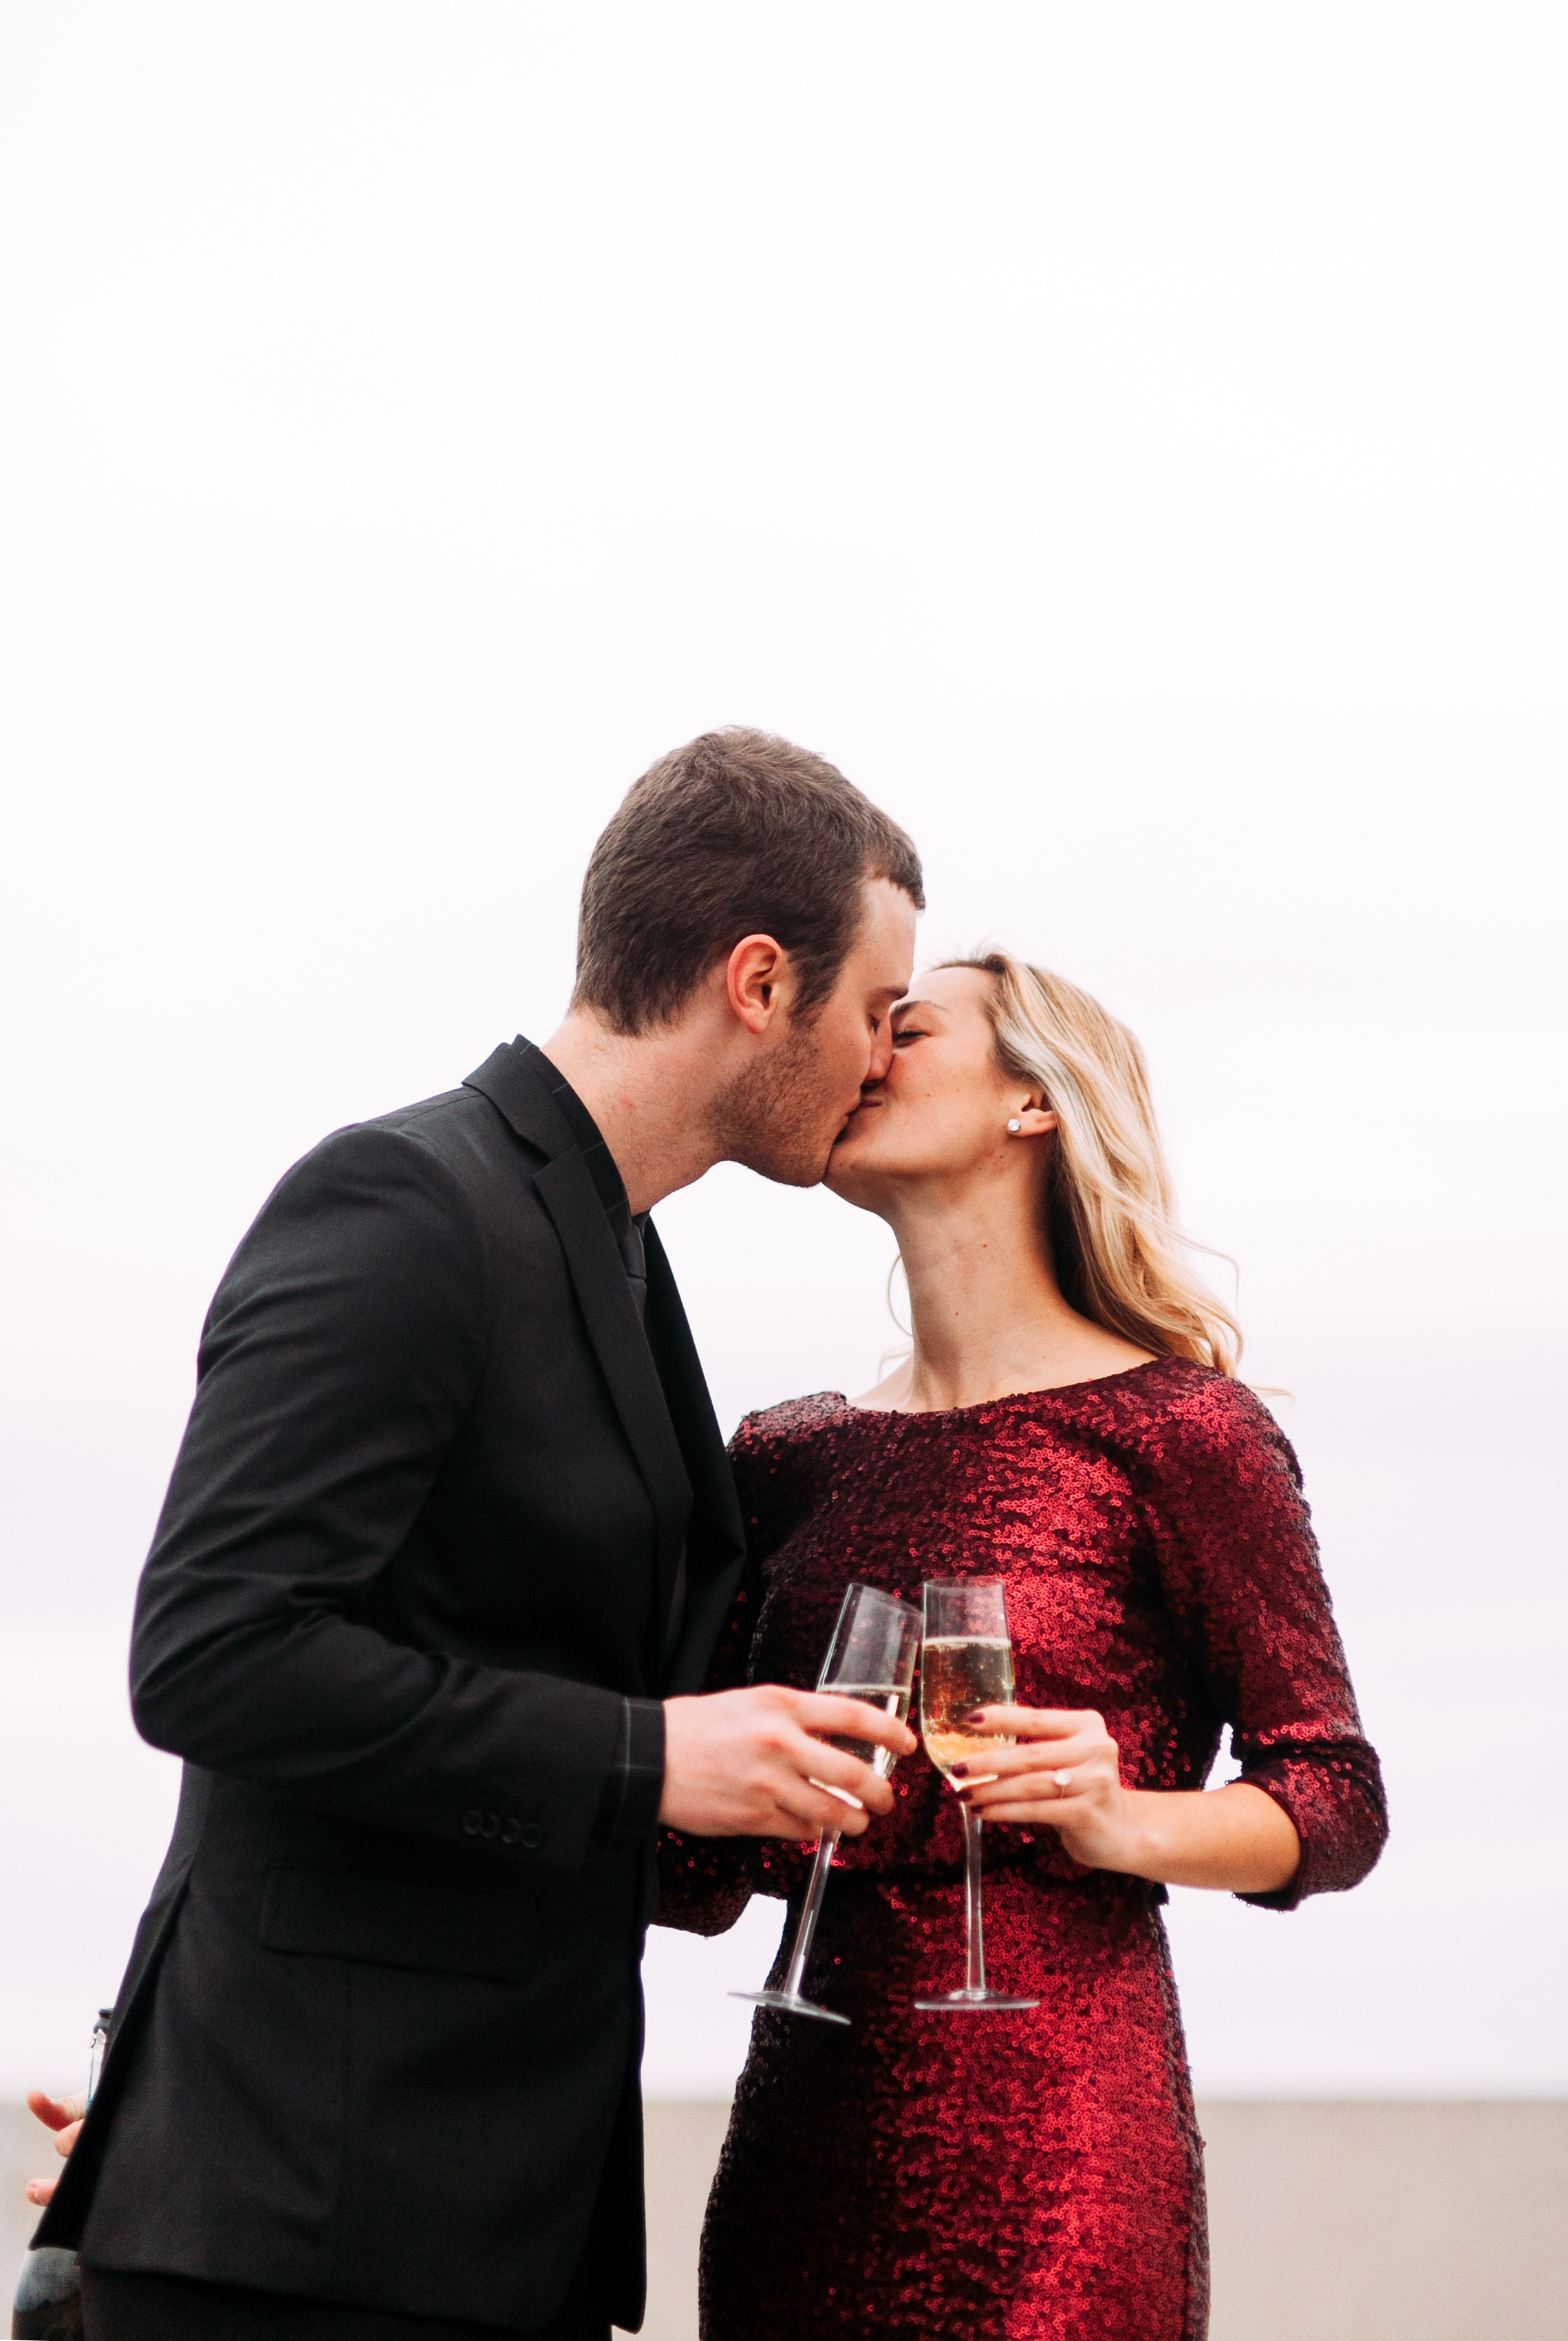 livvyland-blog-olivia-watson-save-the-date-photo-idea-rent-the-runway-sequins-dress-engagement-shoot-austin-texas-kayla-snell-photography-pop-champagne-13